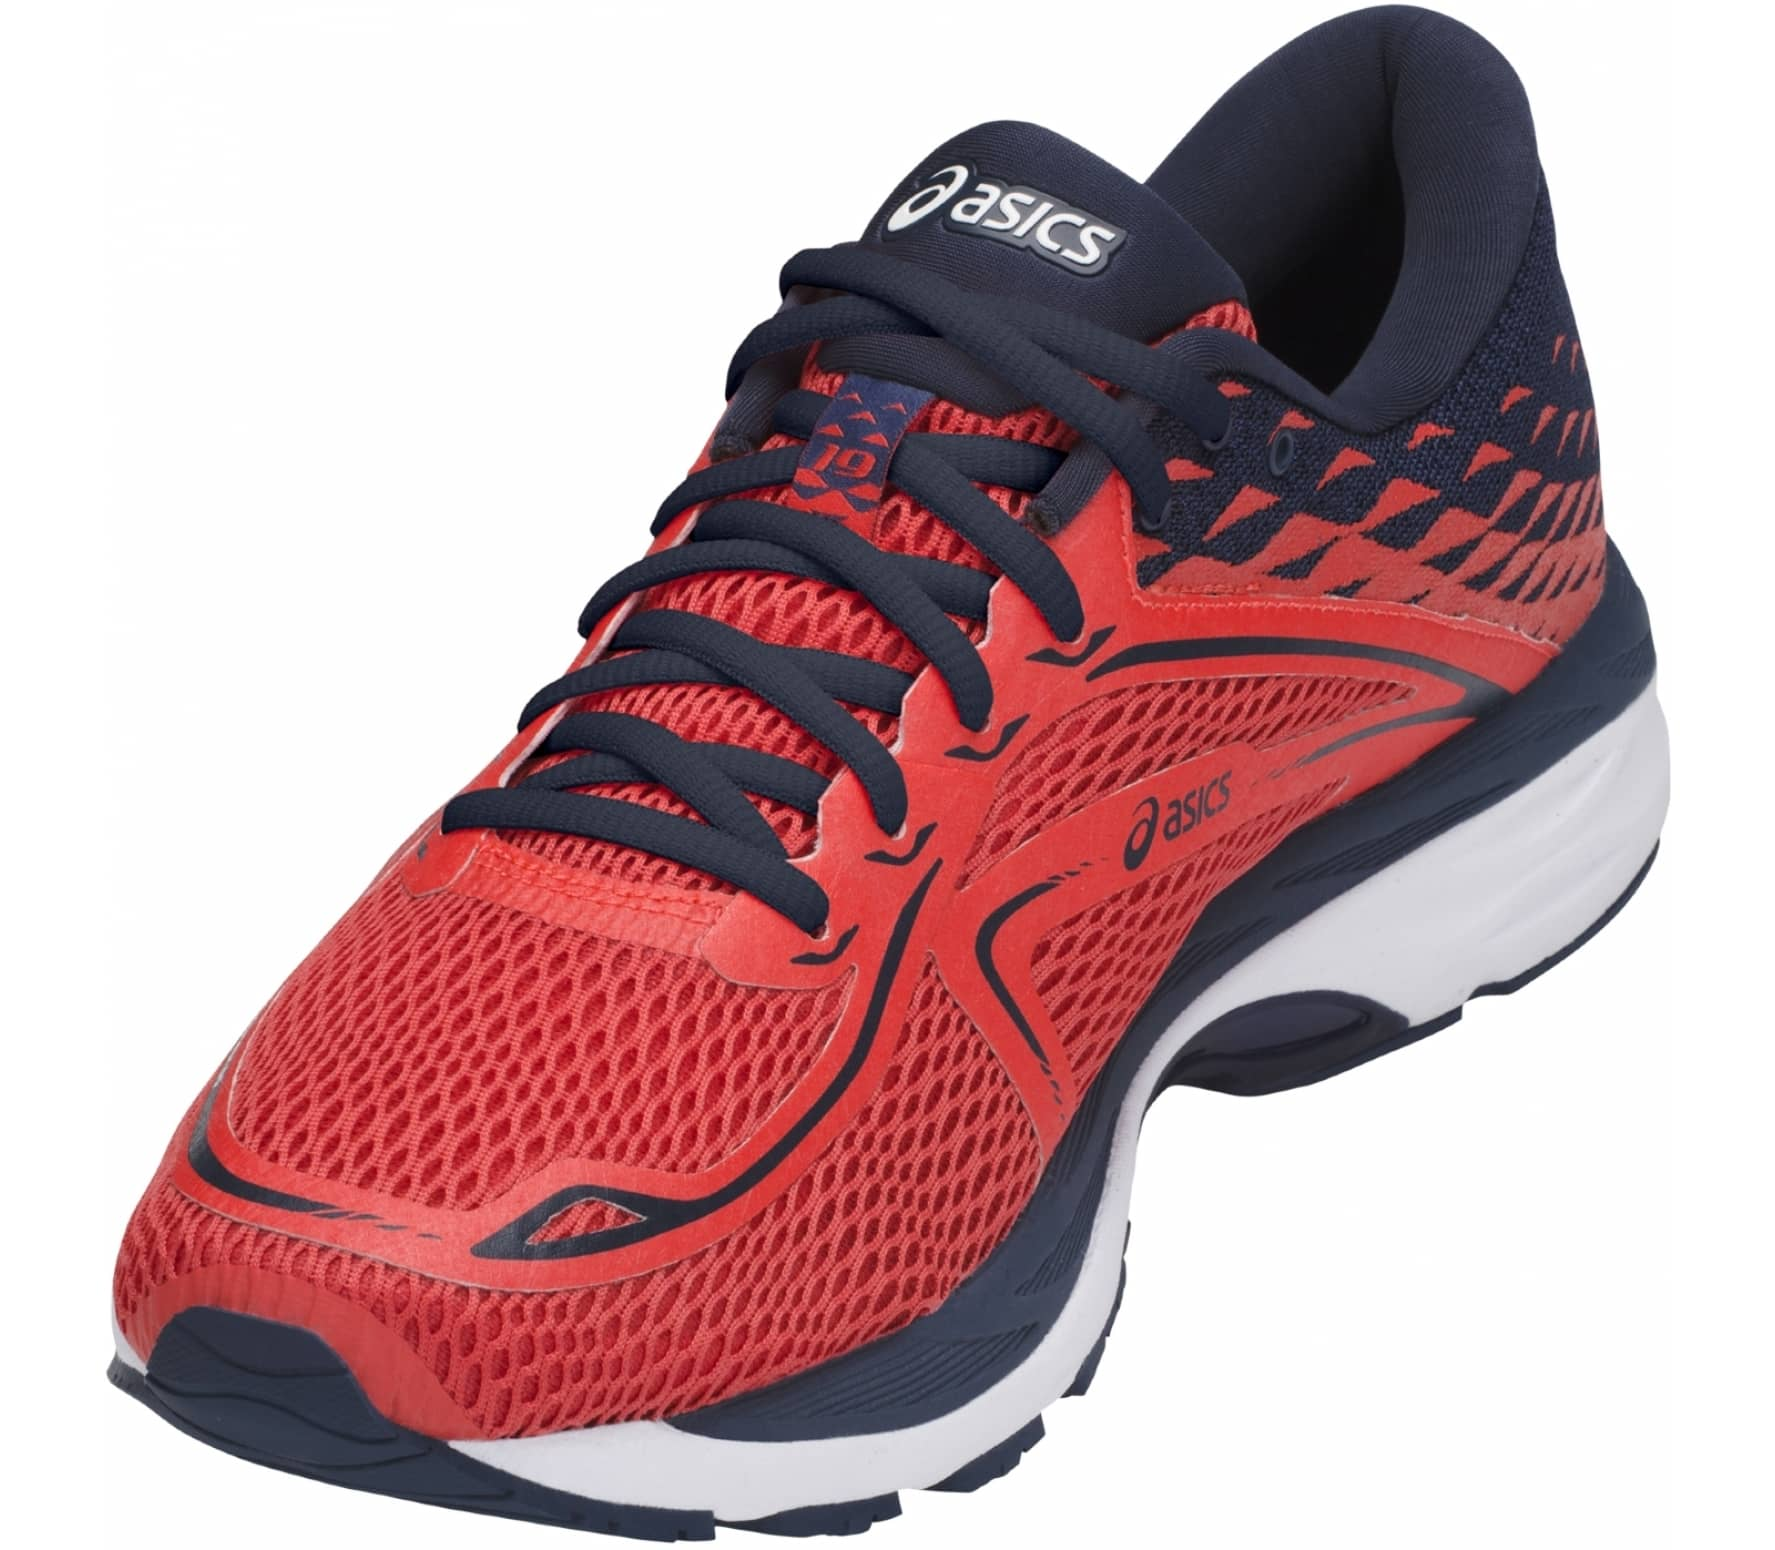 9b5b1aac044 ASICS - Gel-Cumulus 19 men s running shoes (coral dark blue) - buy ...